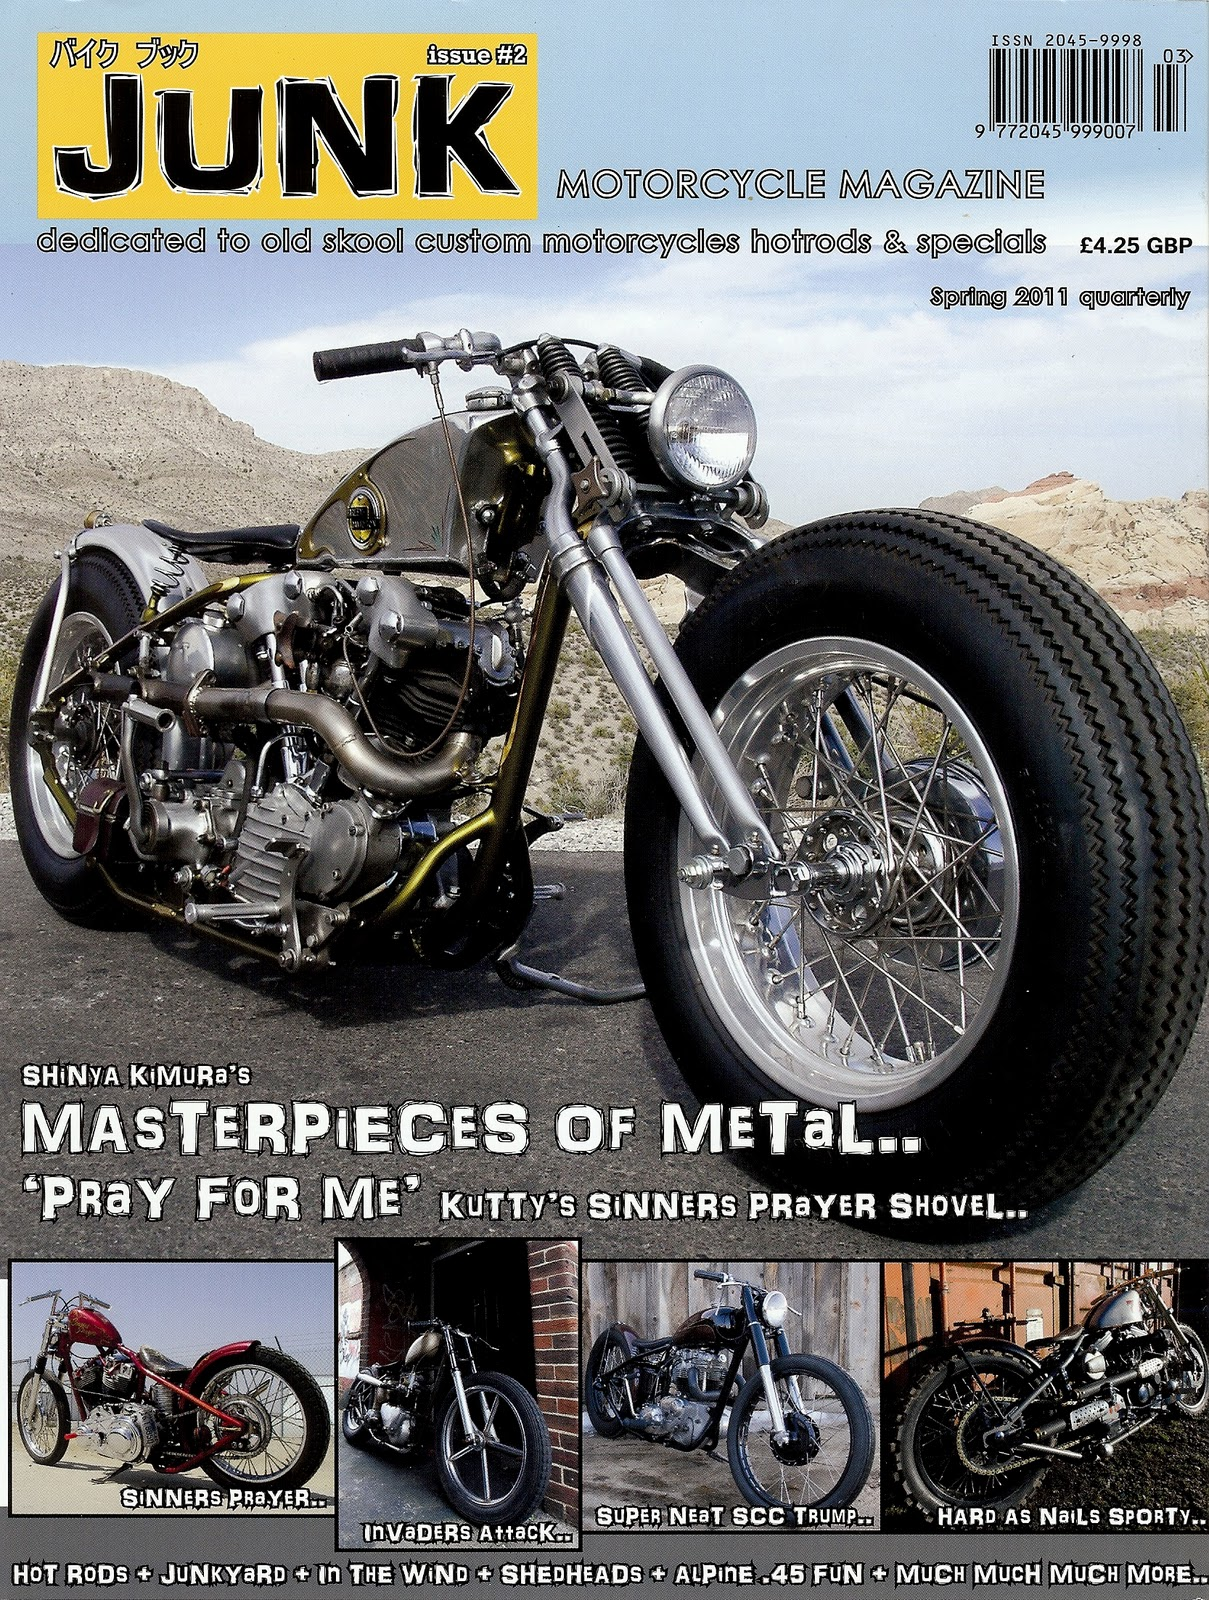 motorcycle magazine junk issue print motorcycles classic trojan remaining limited run second quick last